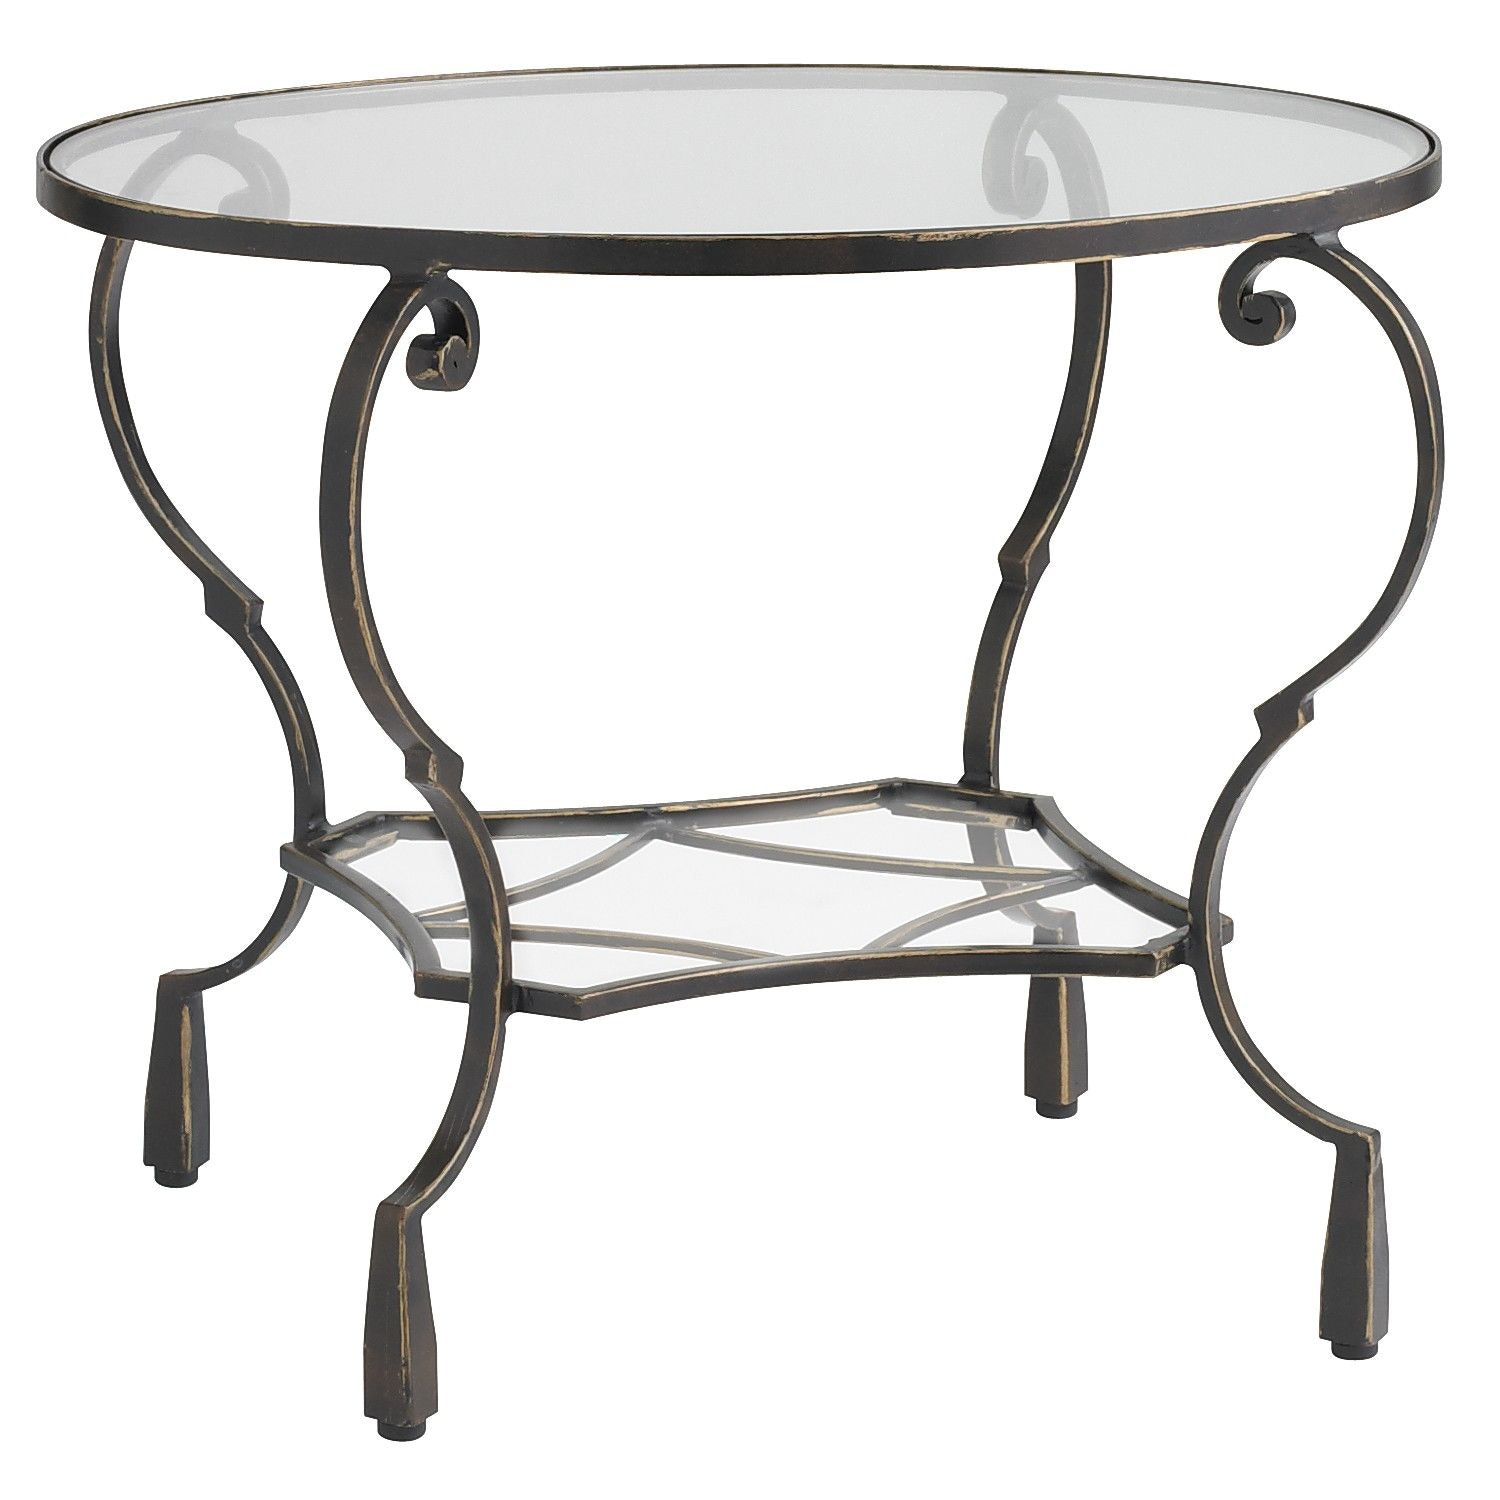 furniture pier one coffee tables table desks decorative imports anywhere round trunk bar stools side mosaic small accent bamboo nesting telephone samsung room essentials mirror